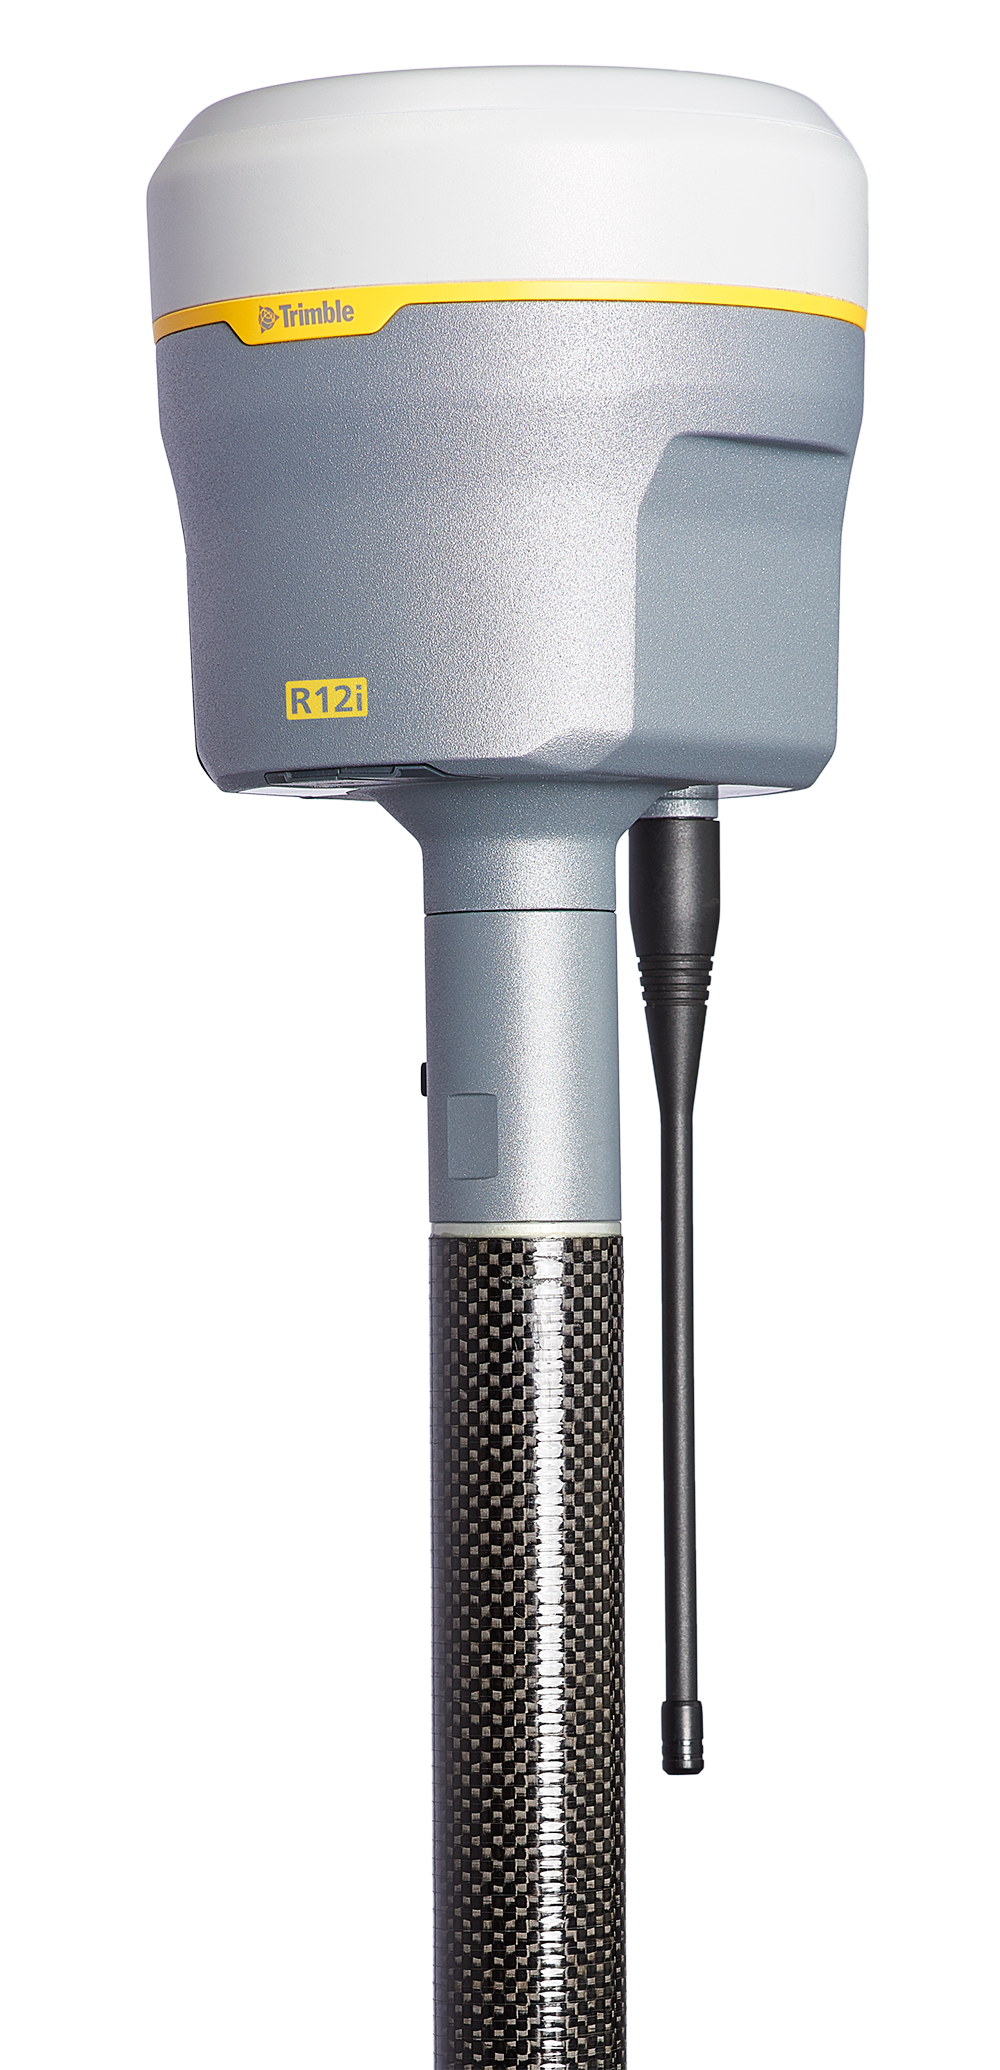 Trimble R12i GNSS Receiver